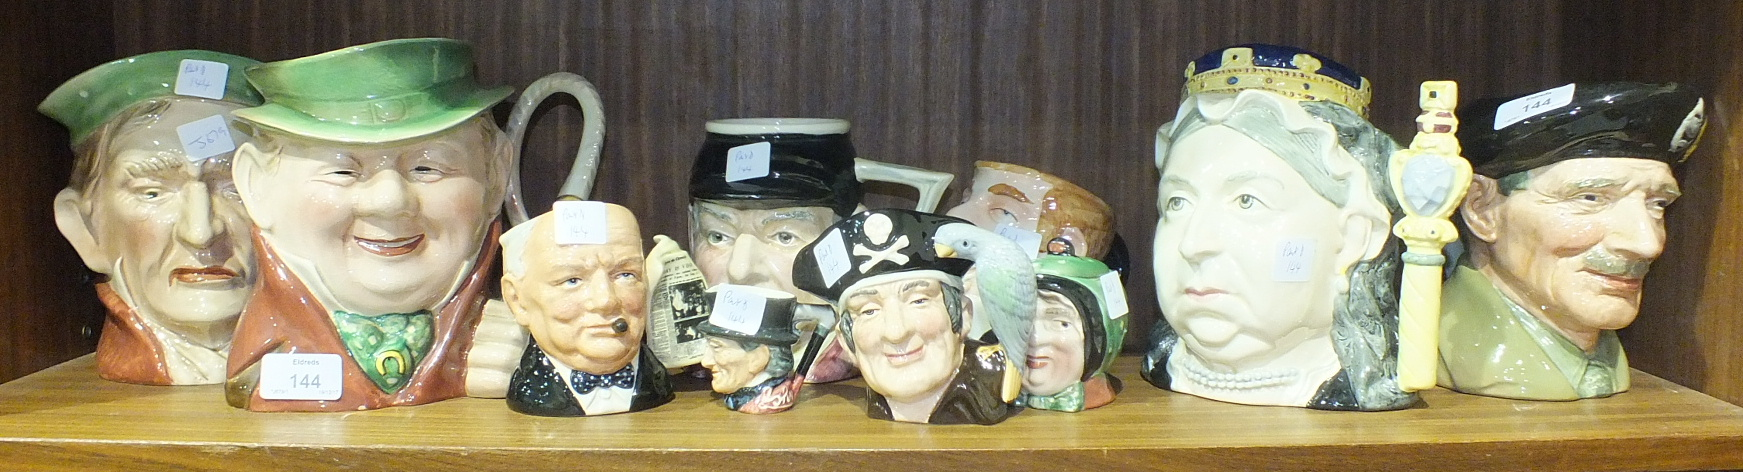 Lot 144 - A collection of Royal Doulton and Beswick character jugs, including 'Monty', (10).